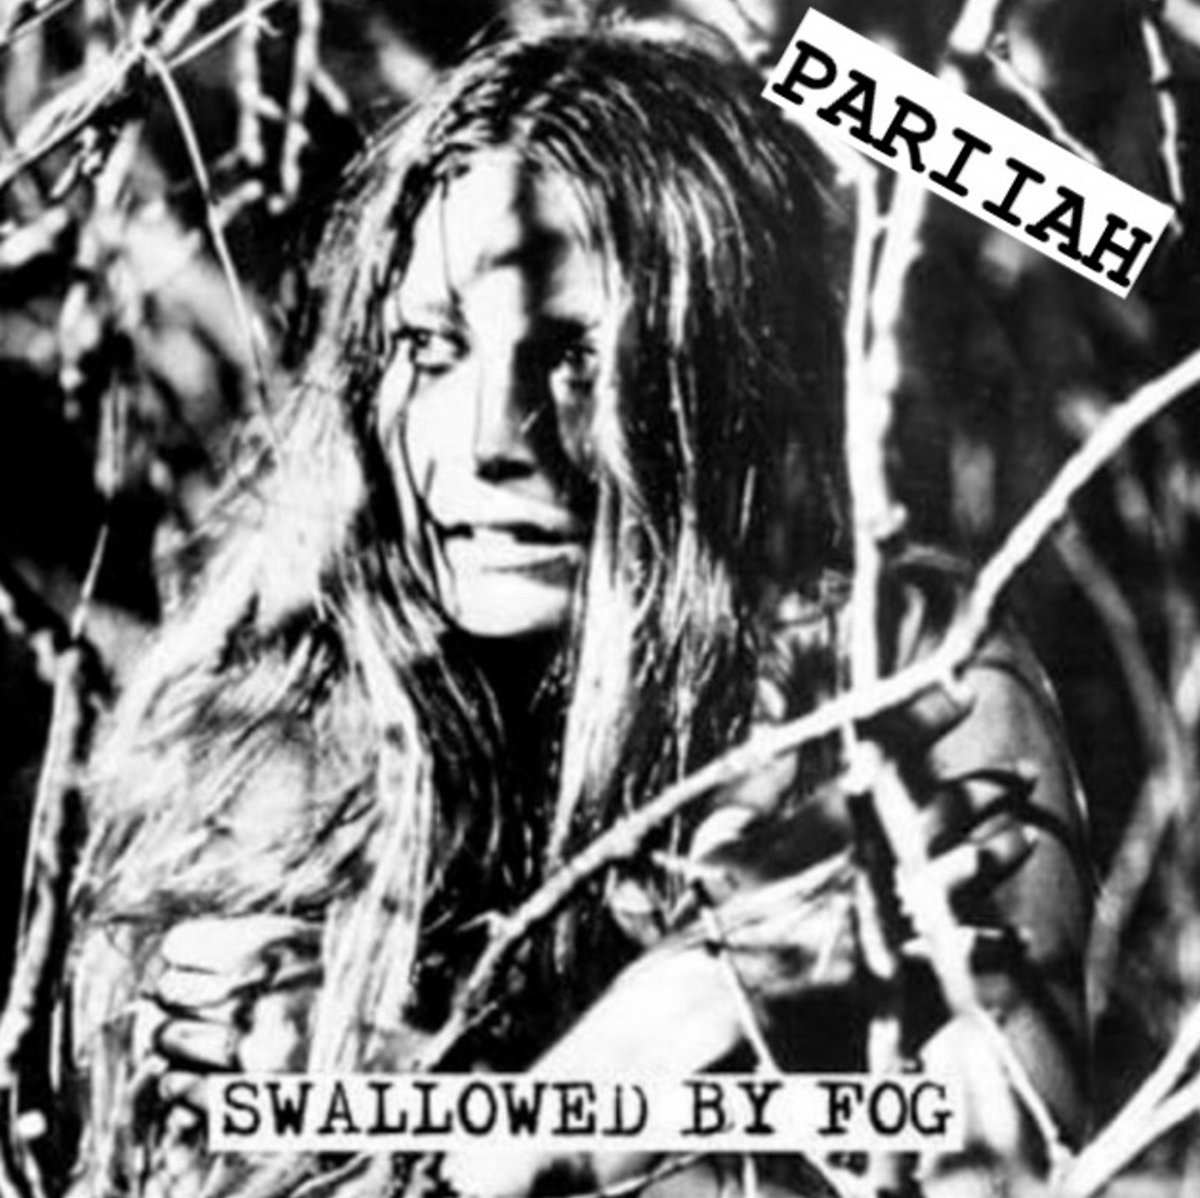 Pariiah swallowed by fog